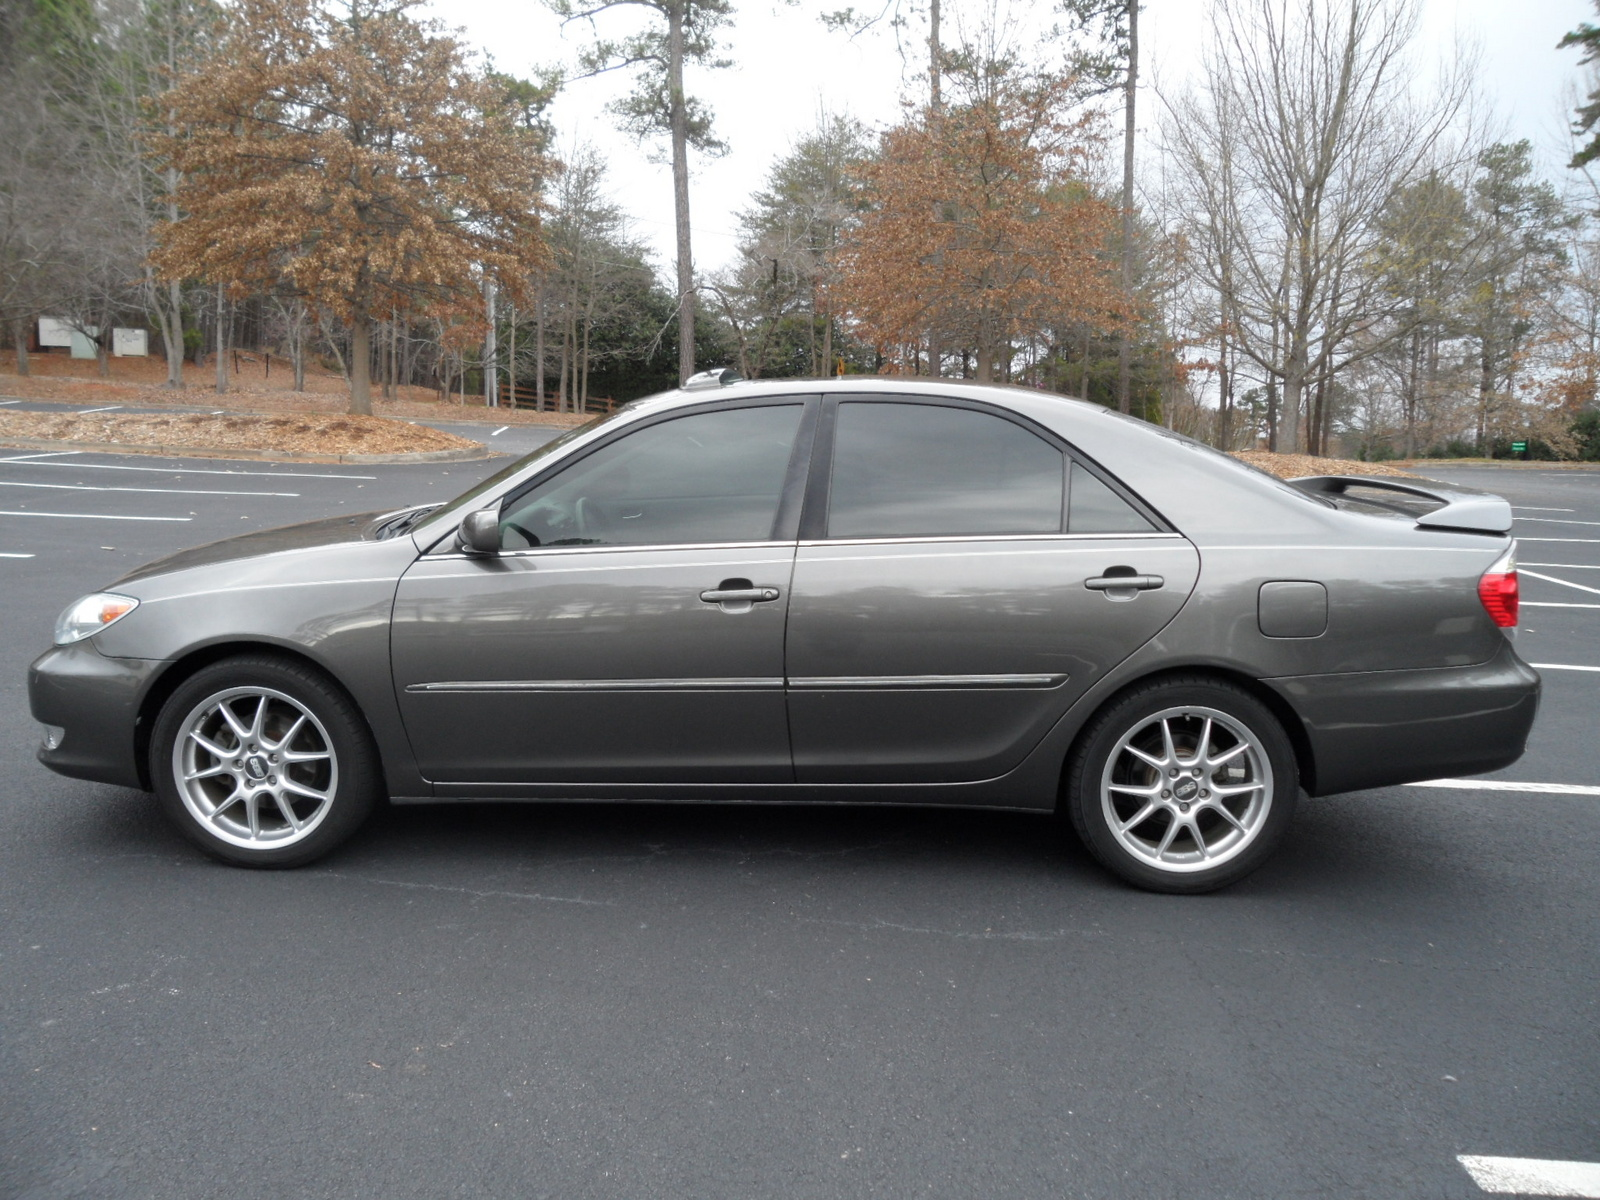 2005 Toyota Camry Pictures Cargurus